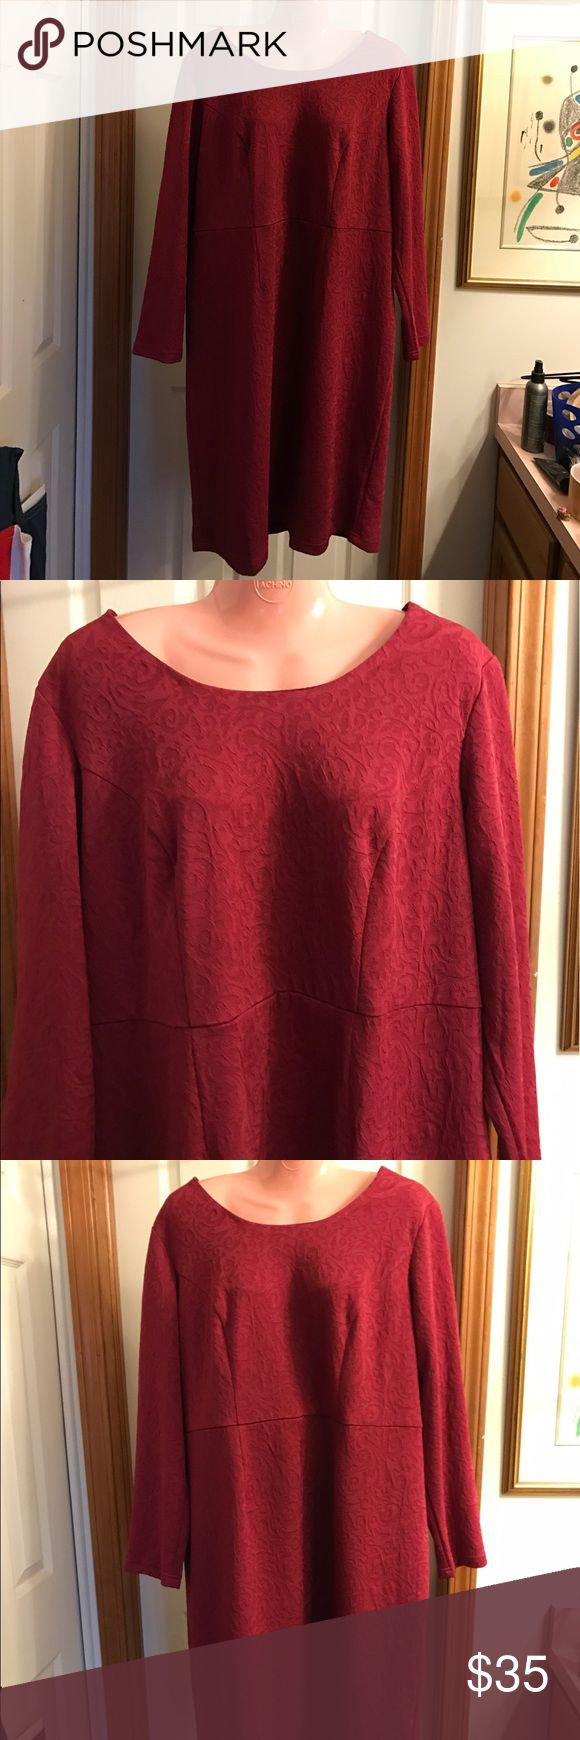 Roman's Red Dress size 16W This dress has a wonderful cut that is very flattering. Long sleeves and scoop neck. Lovely pattern and a deep red color. Quality workmanship. Modest yet super stylish with a classic look. Roman's Dresses Midi